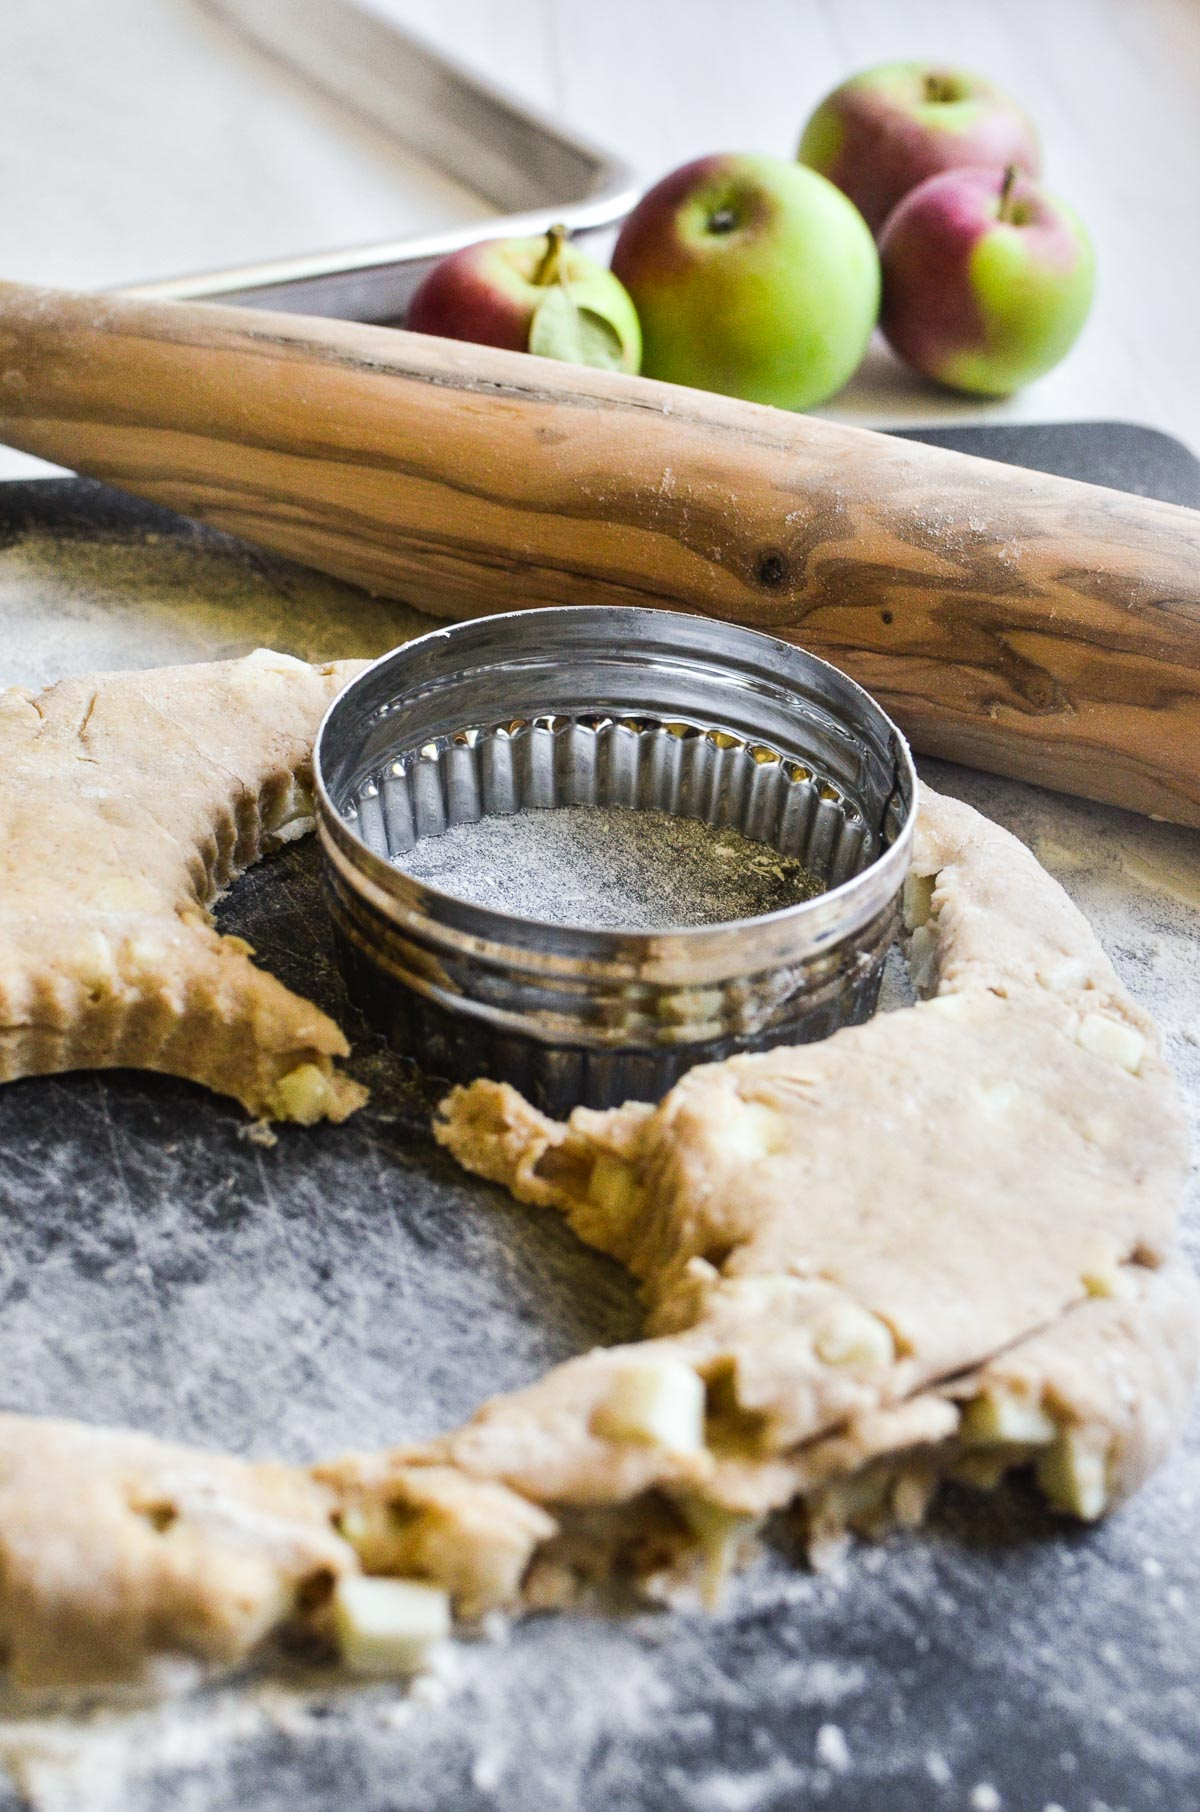 Cutting out apple scones on a floured surface